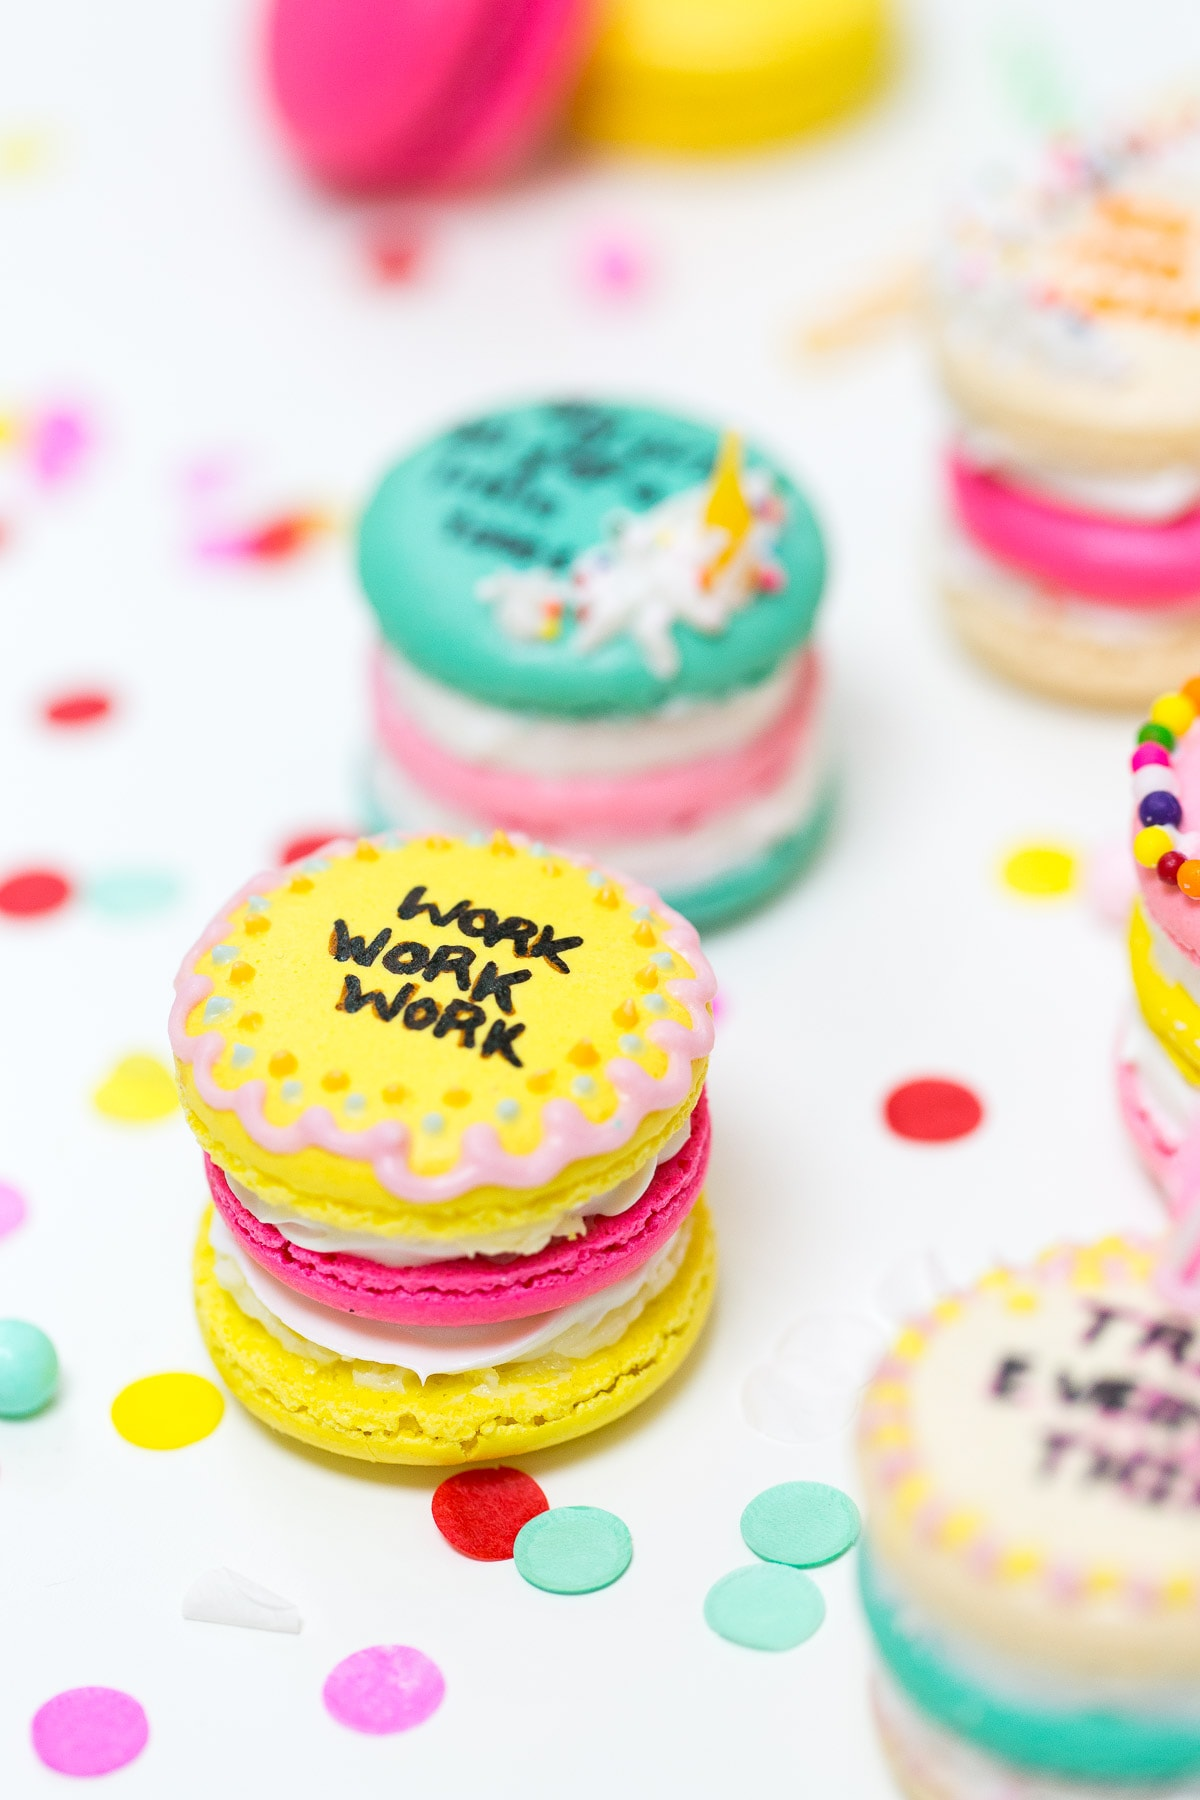 Drake on Cake Inspired Birthday Cake Macarons - Sugar & Cloth